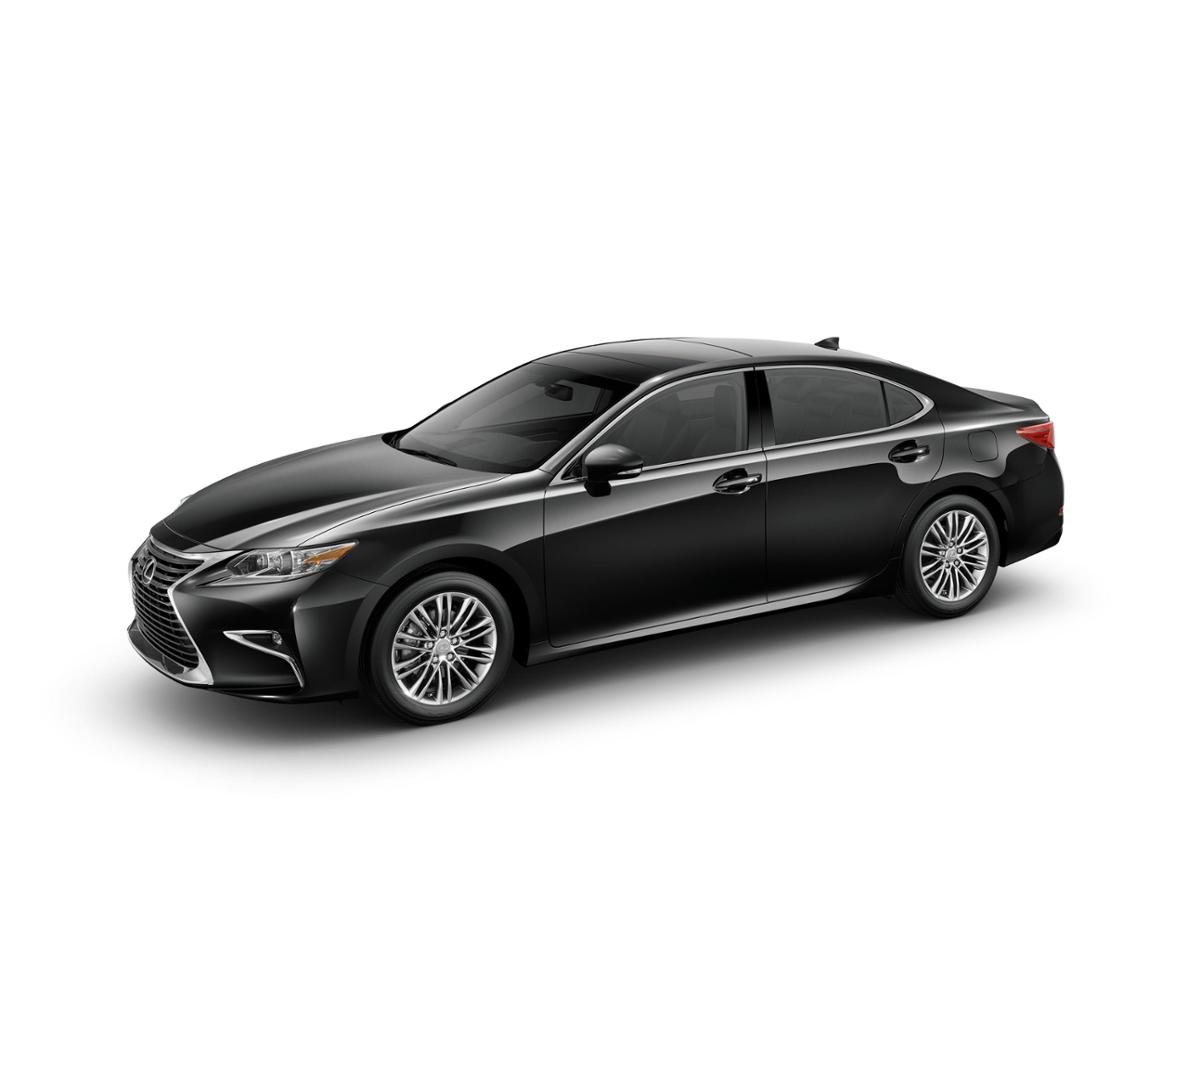 Lexus Of Towson >> Towson Caviar 2017 Lexus ES 350: Certified Car for Sale -TY21078